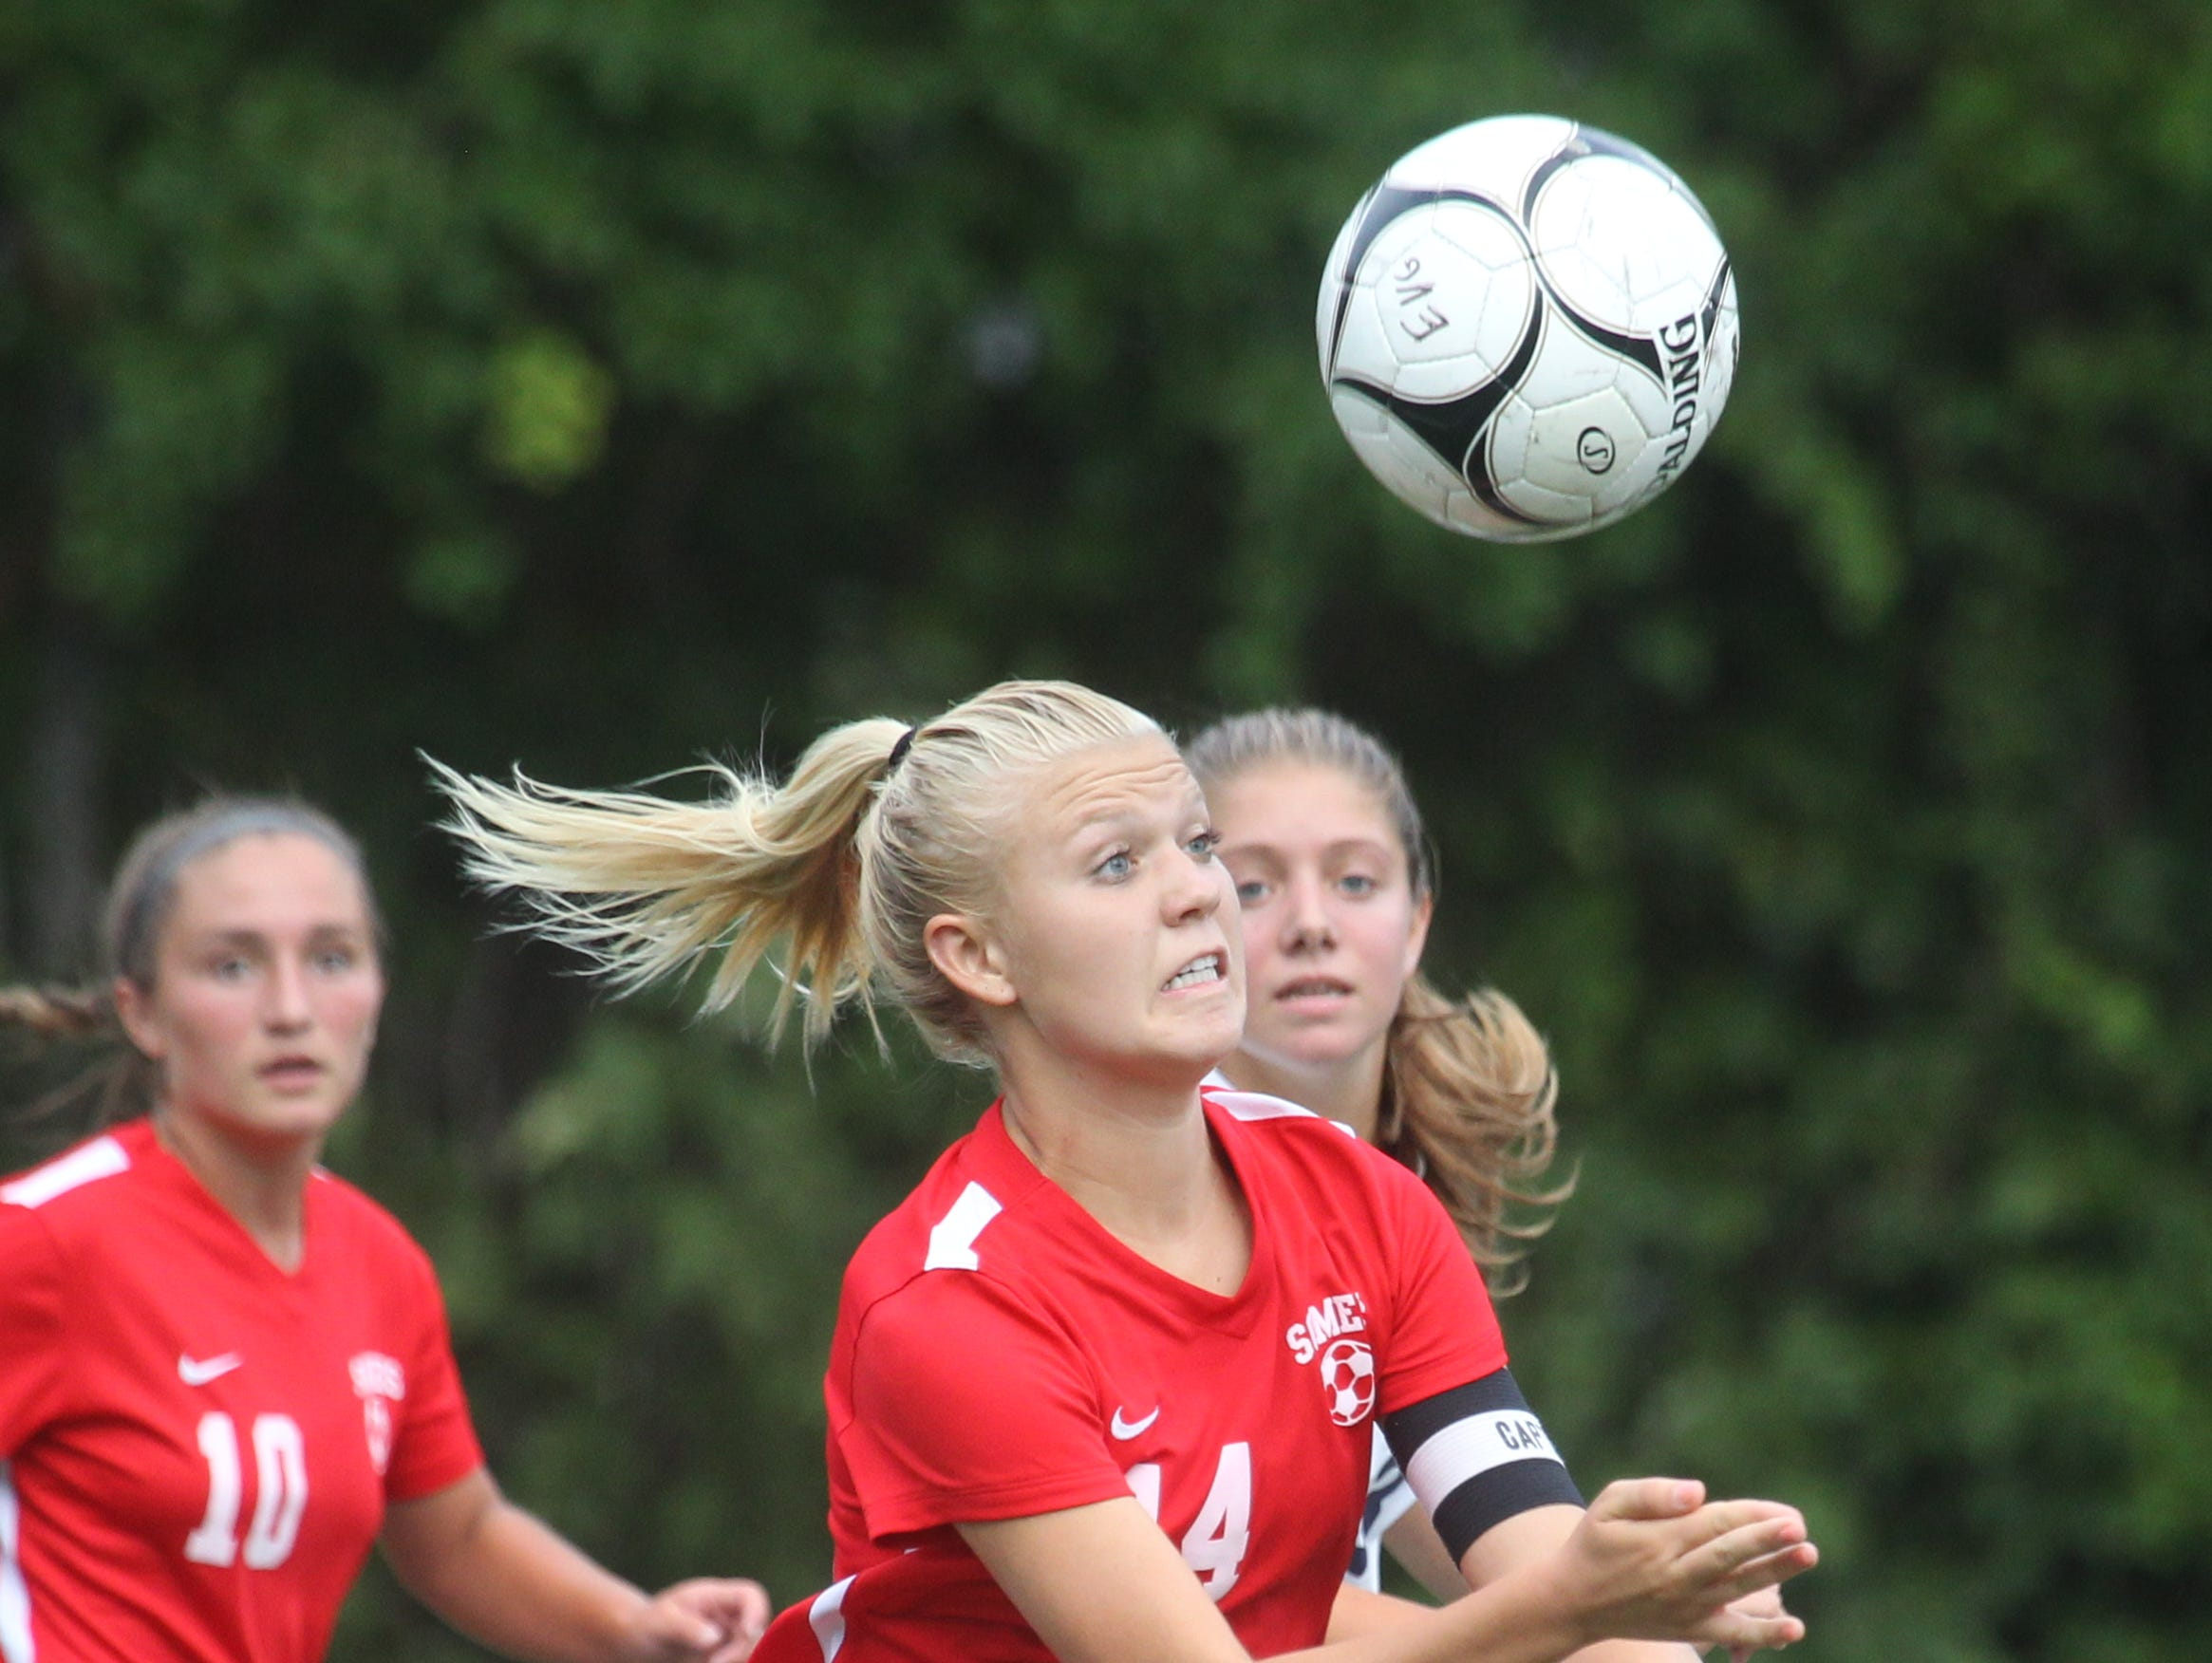 Somers' Melina Couzis controls the ball on her way to scoring a goal during a game at Eastchester Sept. 6, 2016. Somers won 8-1.